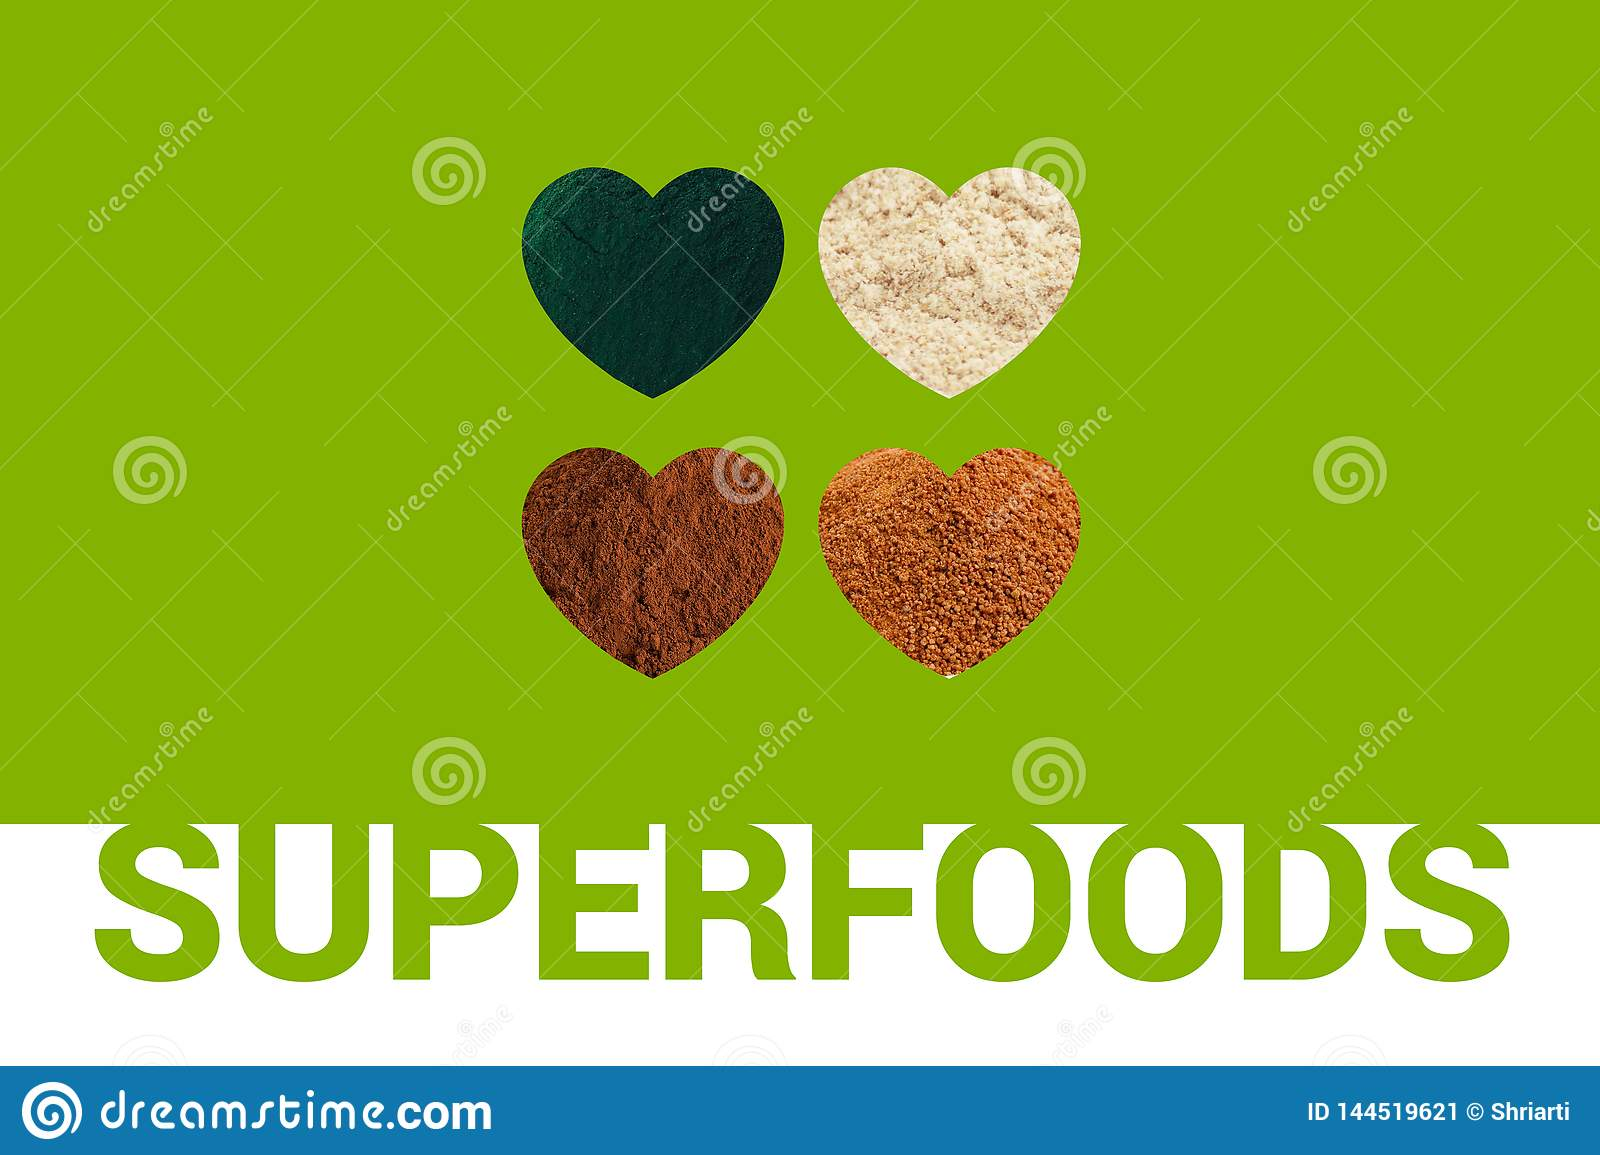 Superfoods text and four Hearts with spirulina powder, cacao powder, almond flour and coconut palm sugar on green ba